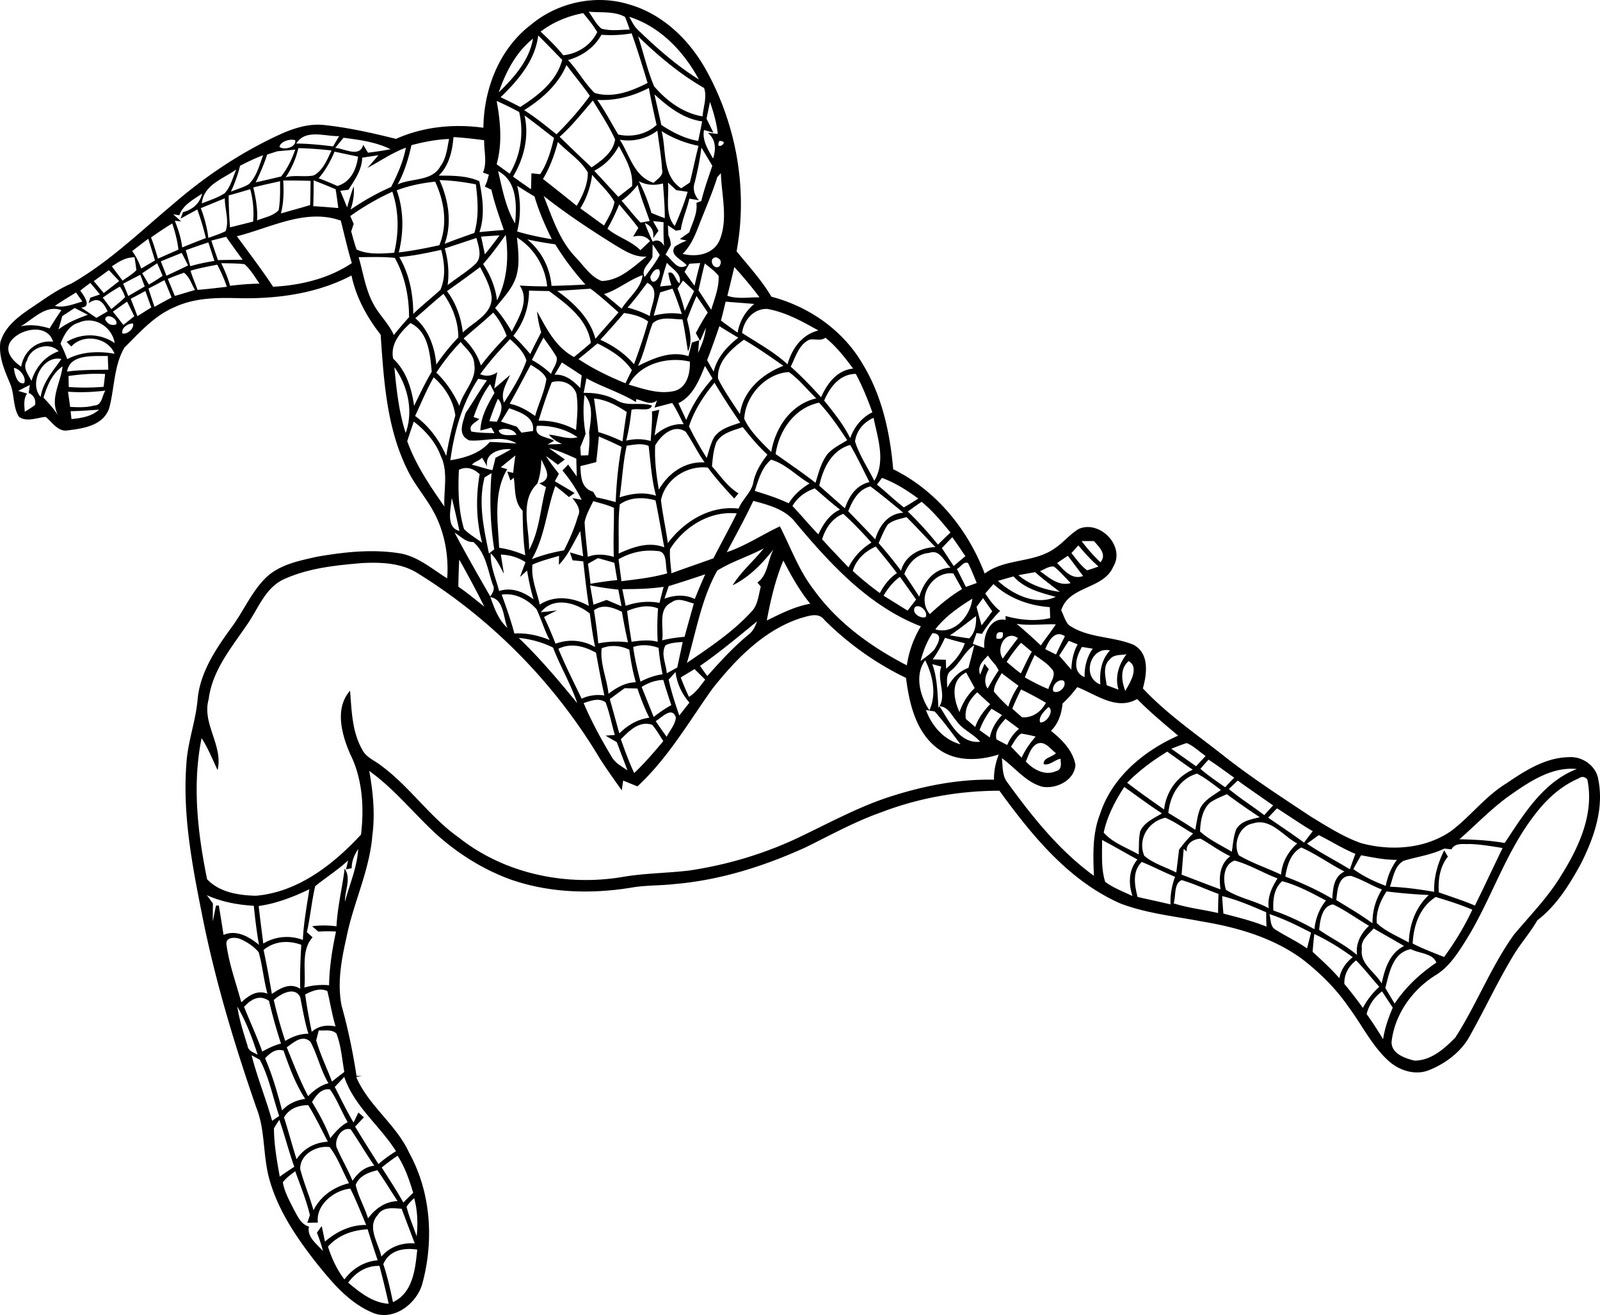 Free Childrens Coloring Pages Coloring Pages to Print Free